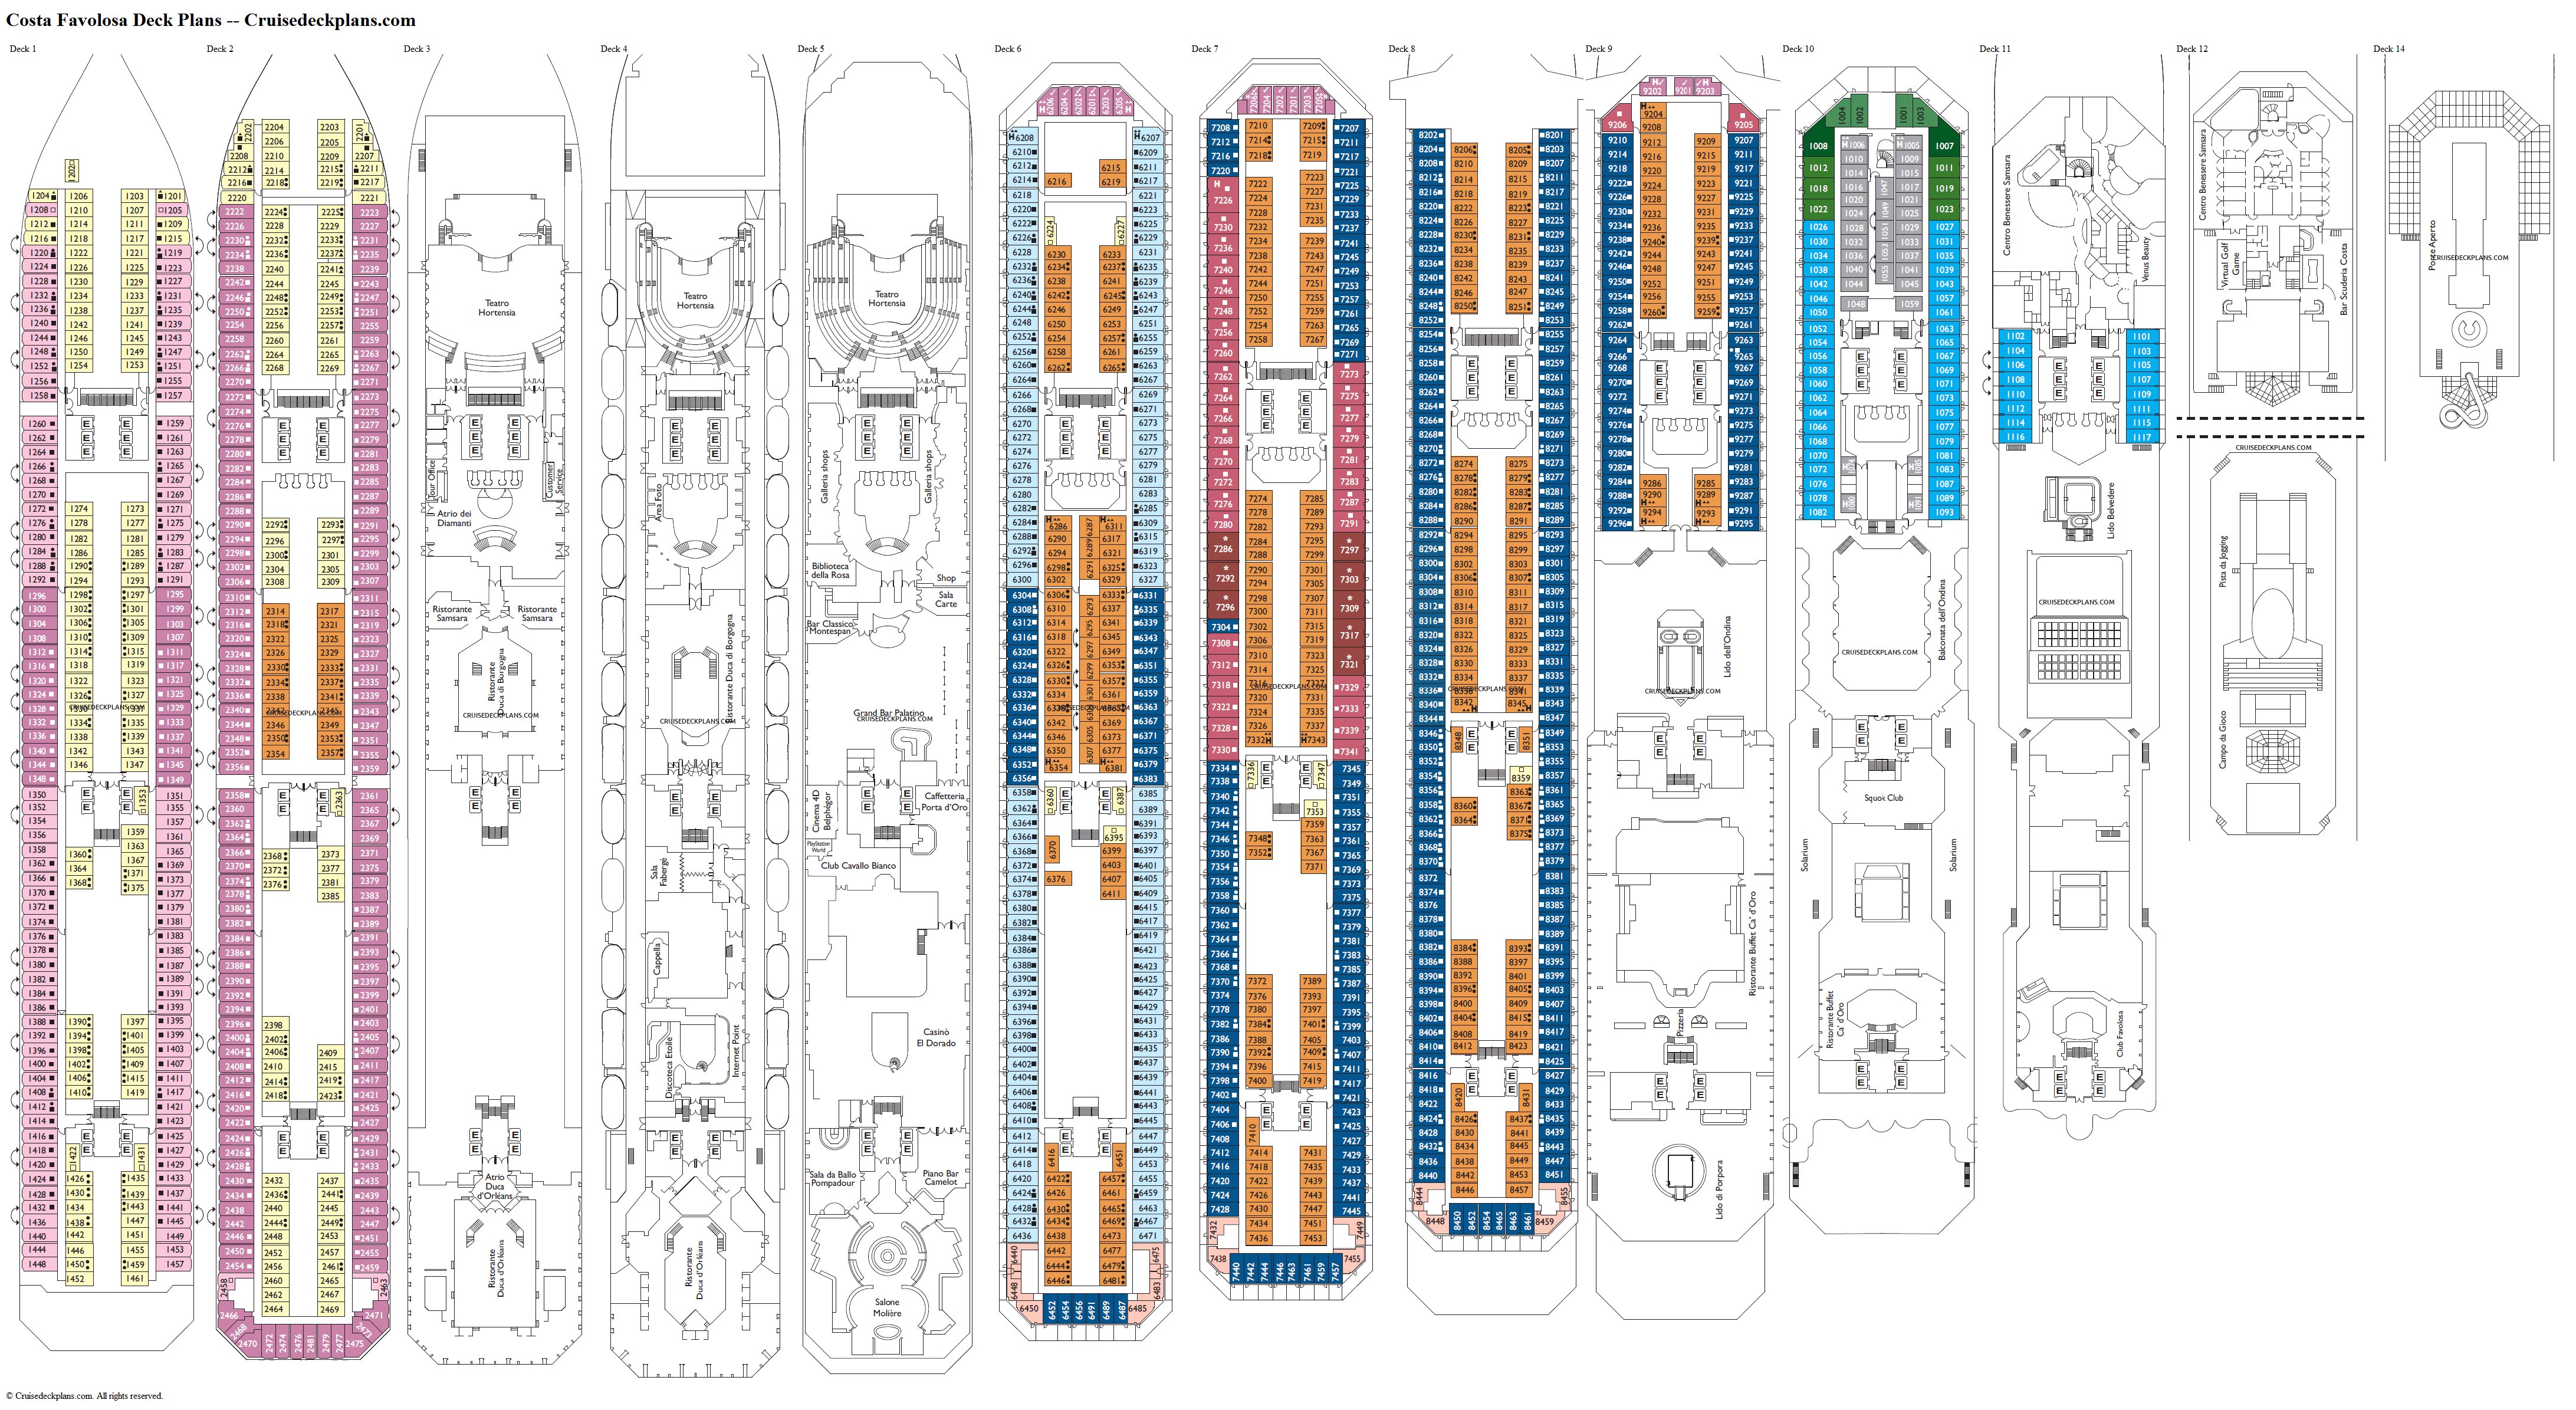 Costa Favolosa deck plans image